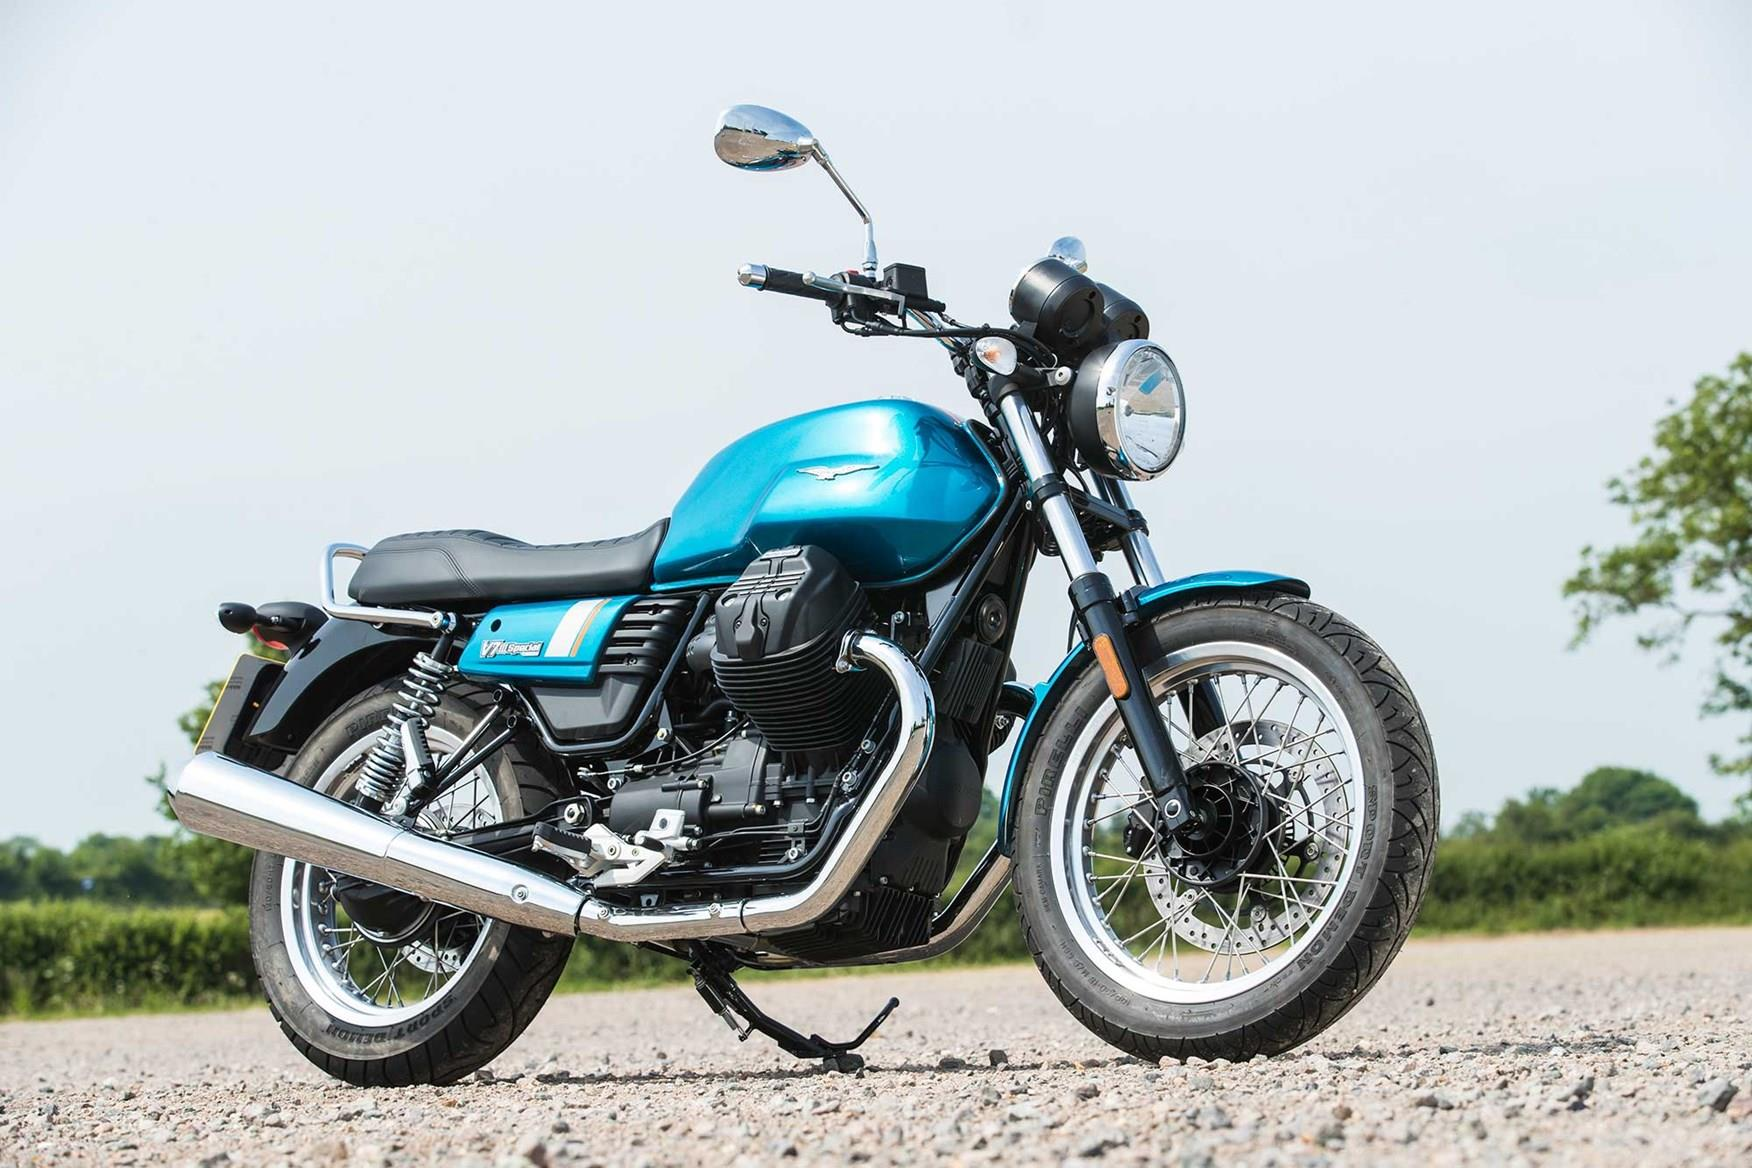 MOTO-GUZZI V7 SPECIAL (2017-on) Review | MCN